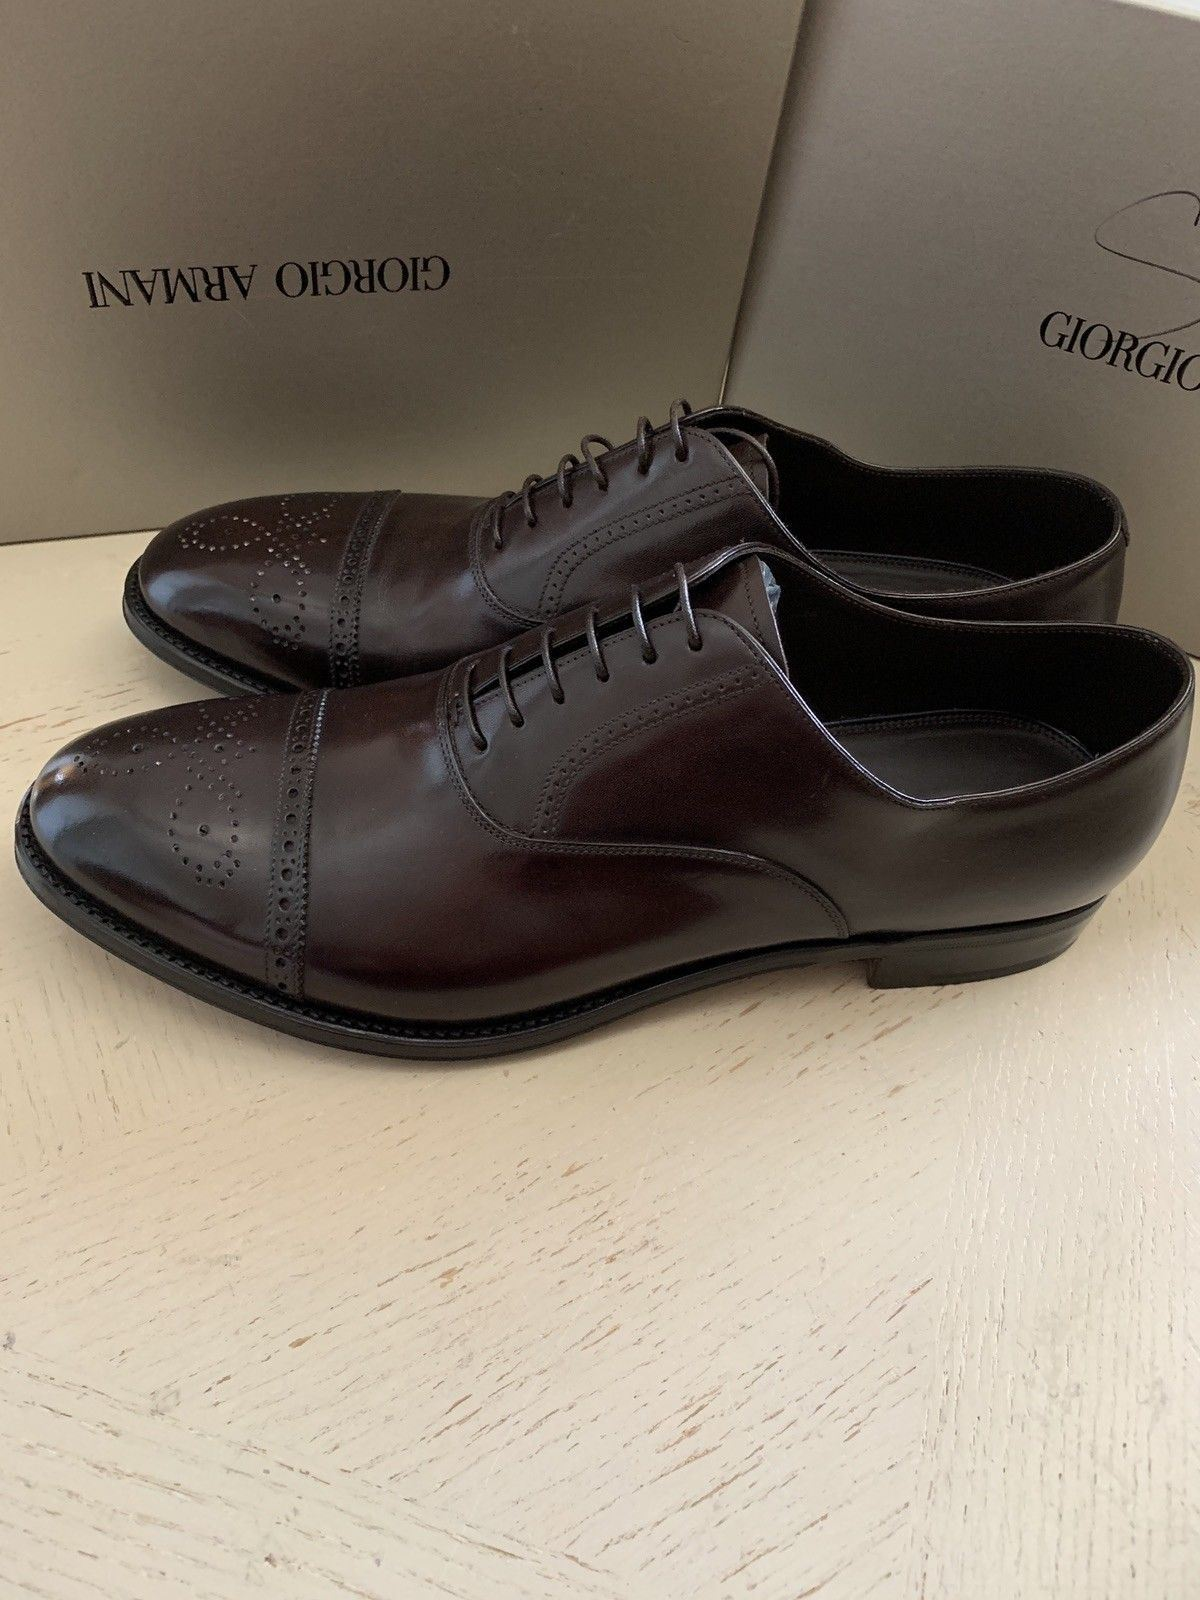 New $1495 Giorgio Armani Mens Leather Oxford Shoes DK Burgundy 9.5 US X2C482